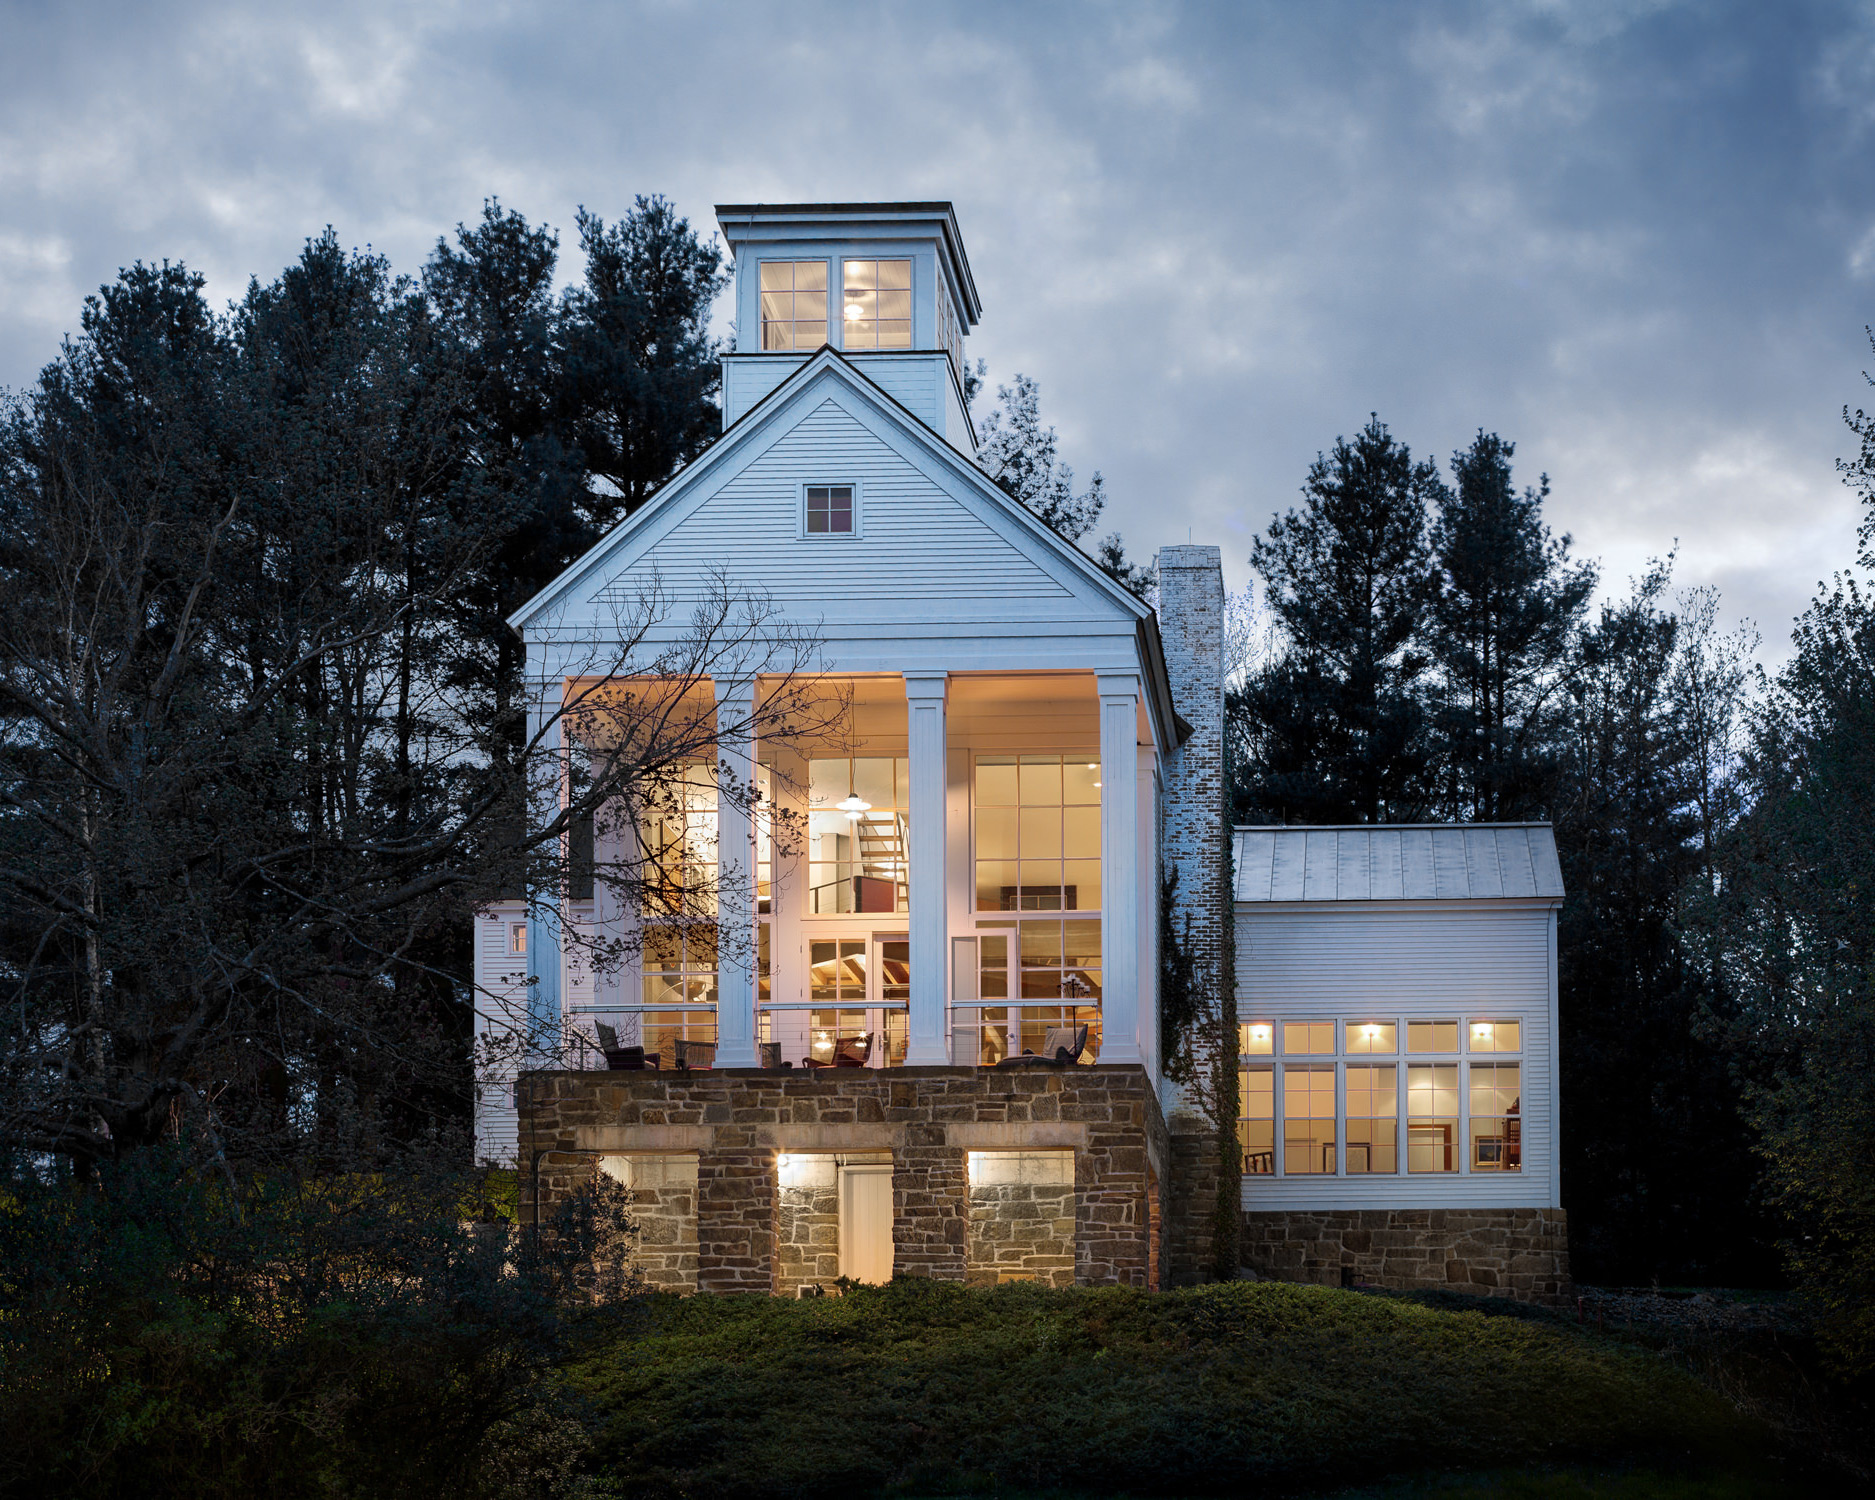 An exterior view at twilight of a traditional Vermont home by professional photographer Stina Booth